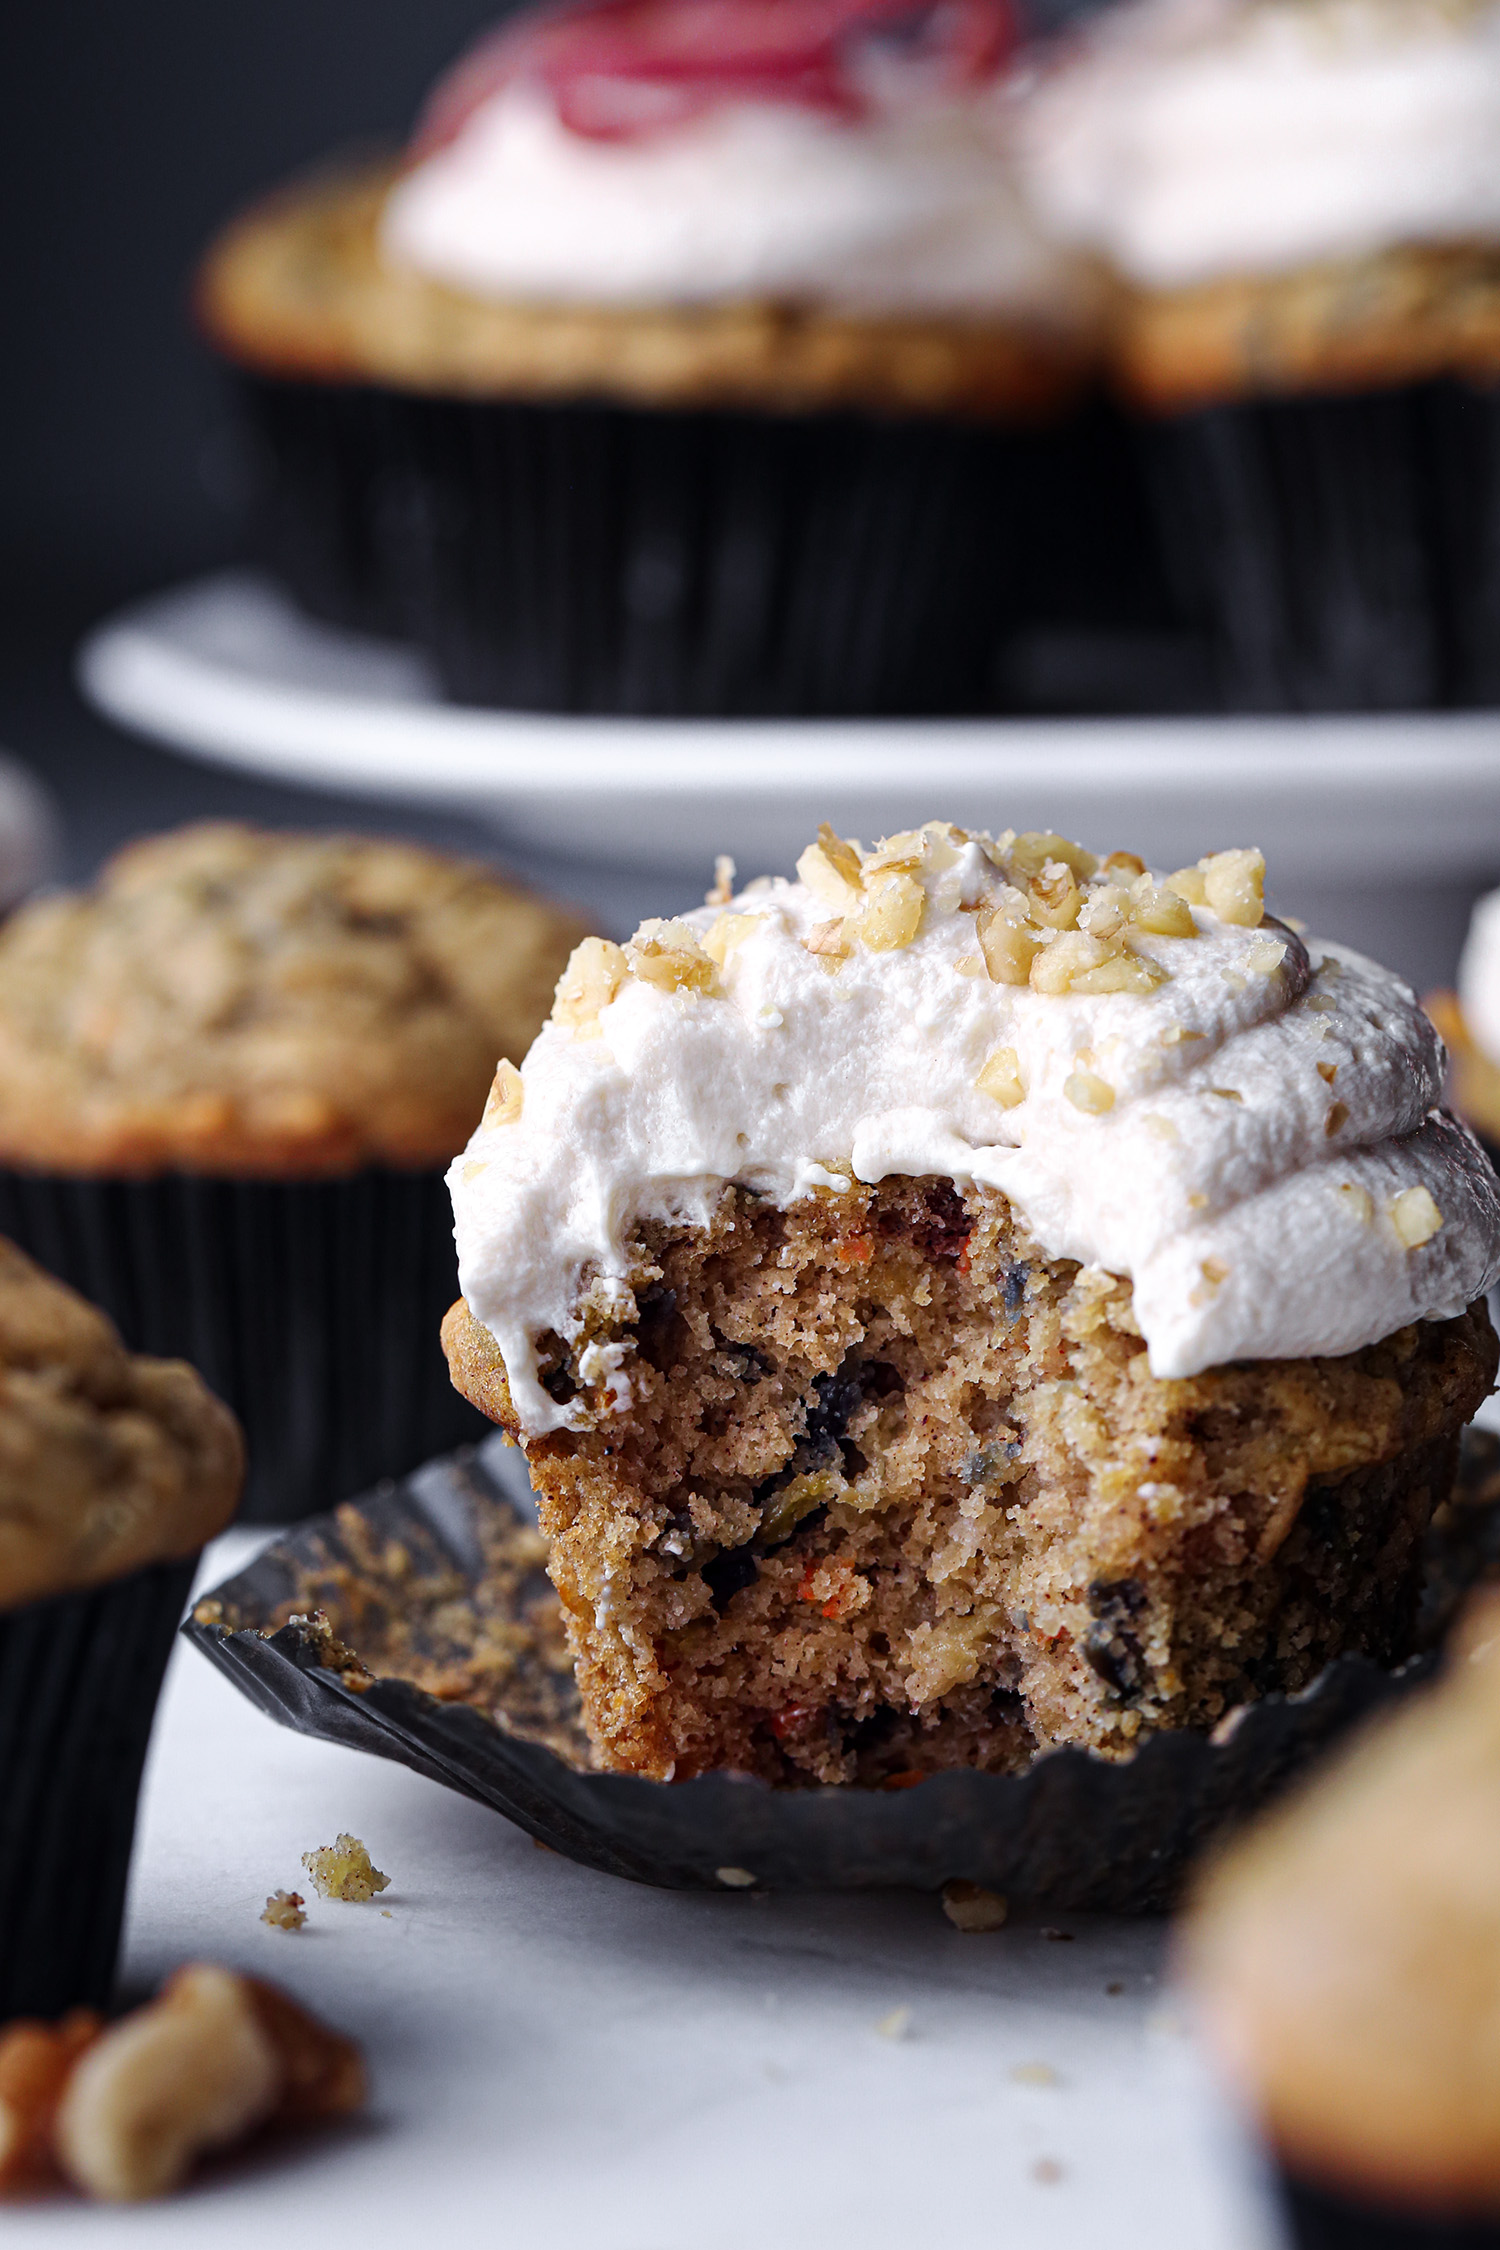 Rainbow Carrot Cake Muffins with Maple Cream Frosting | Free of gluten, dairy, and refined sugar!